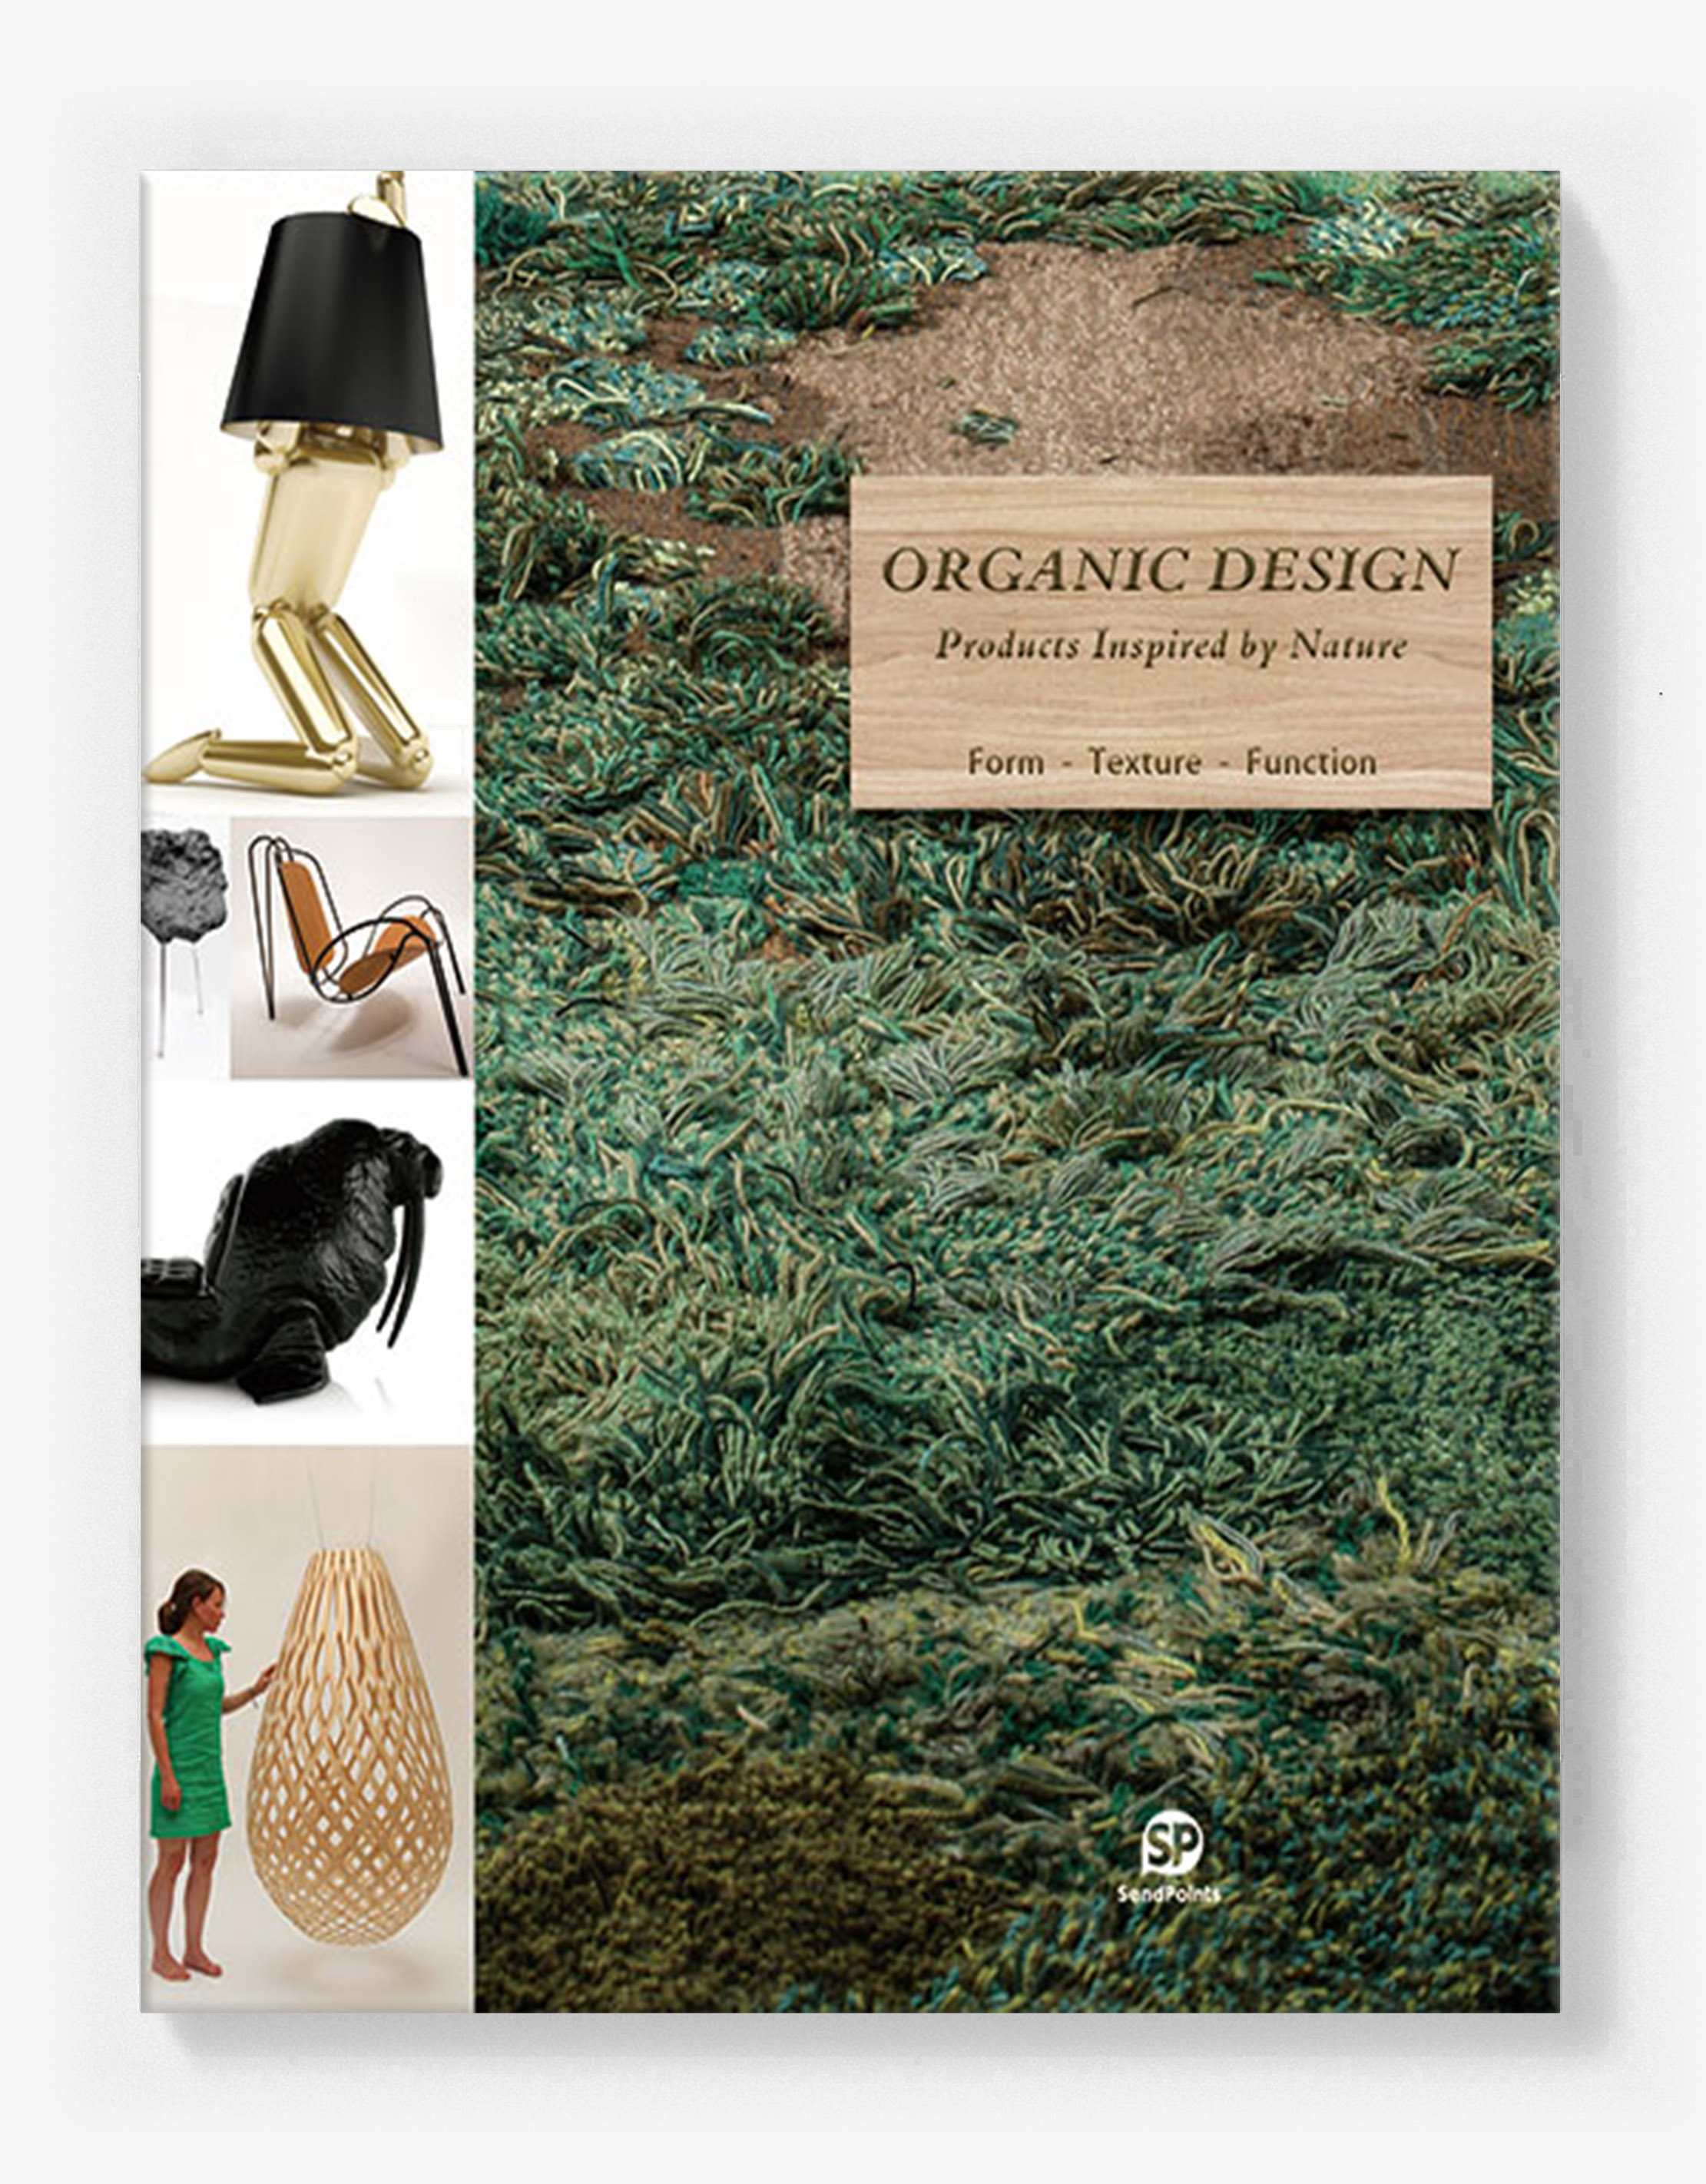 Organic Design: Products Inspired by Nature, 2016